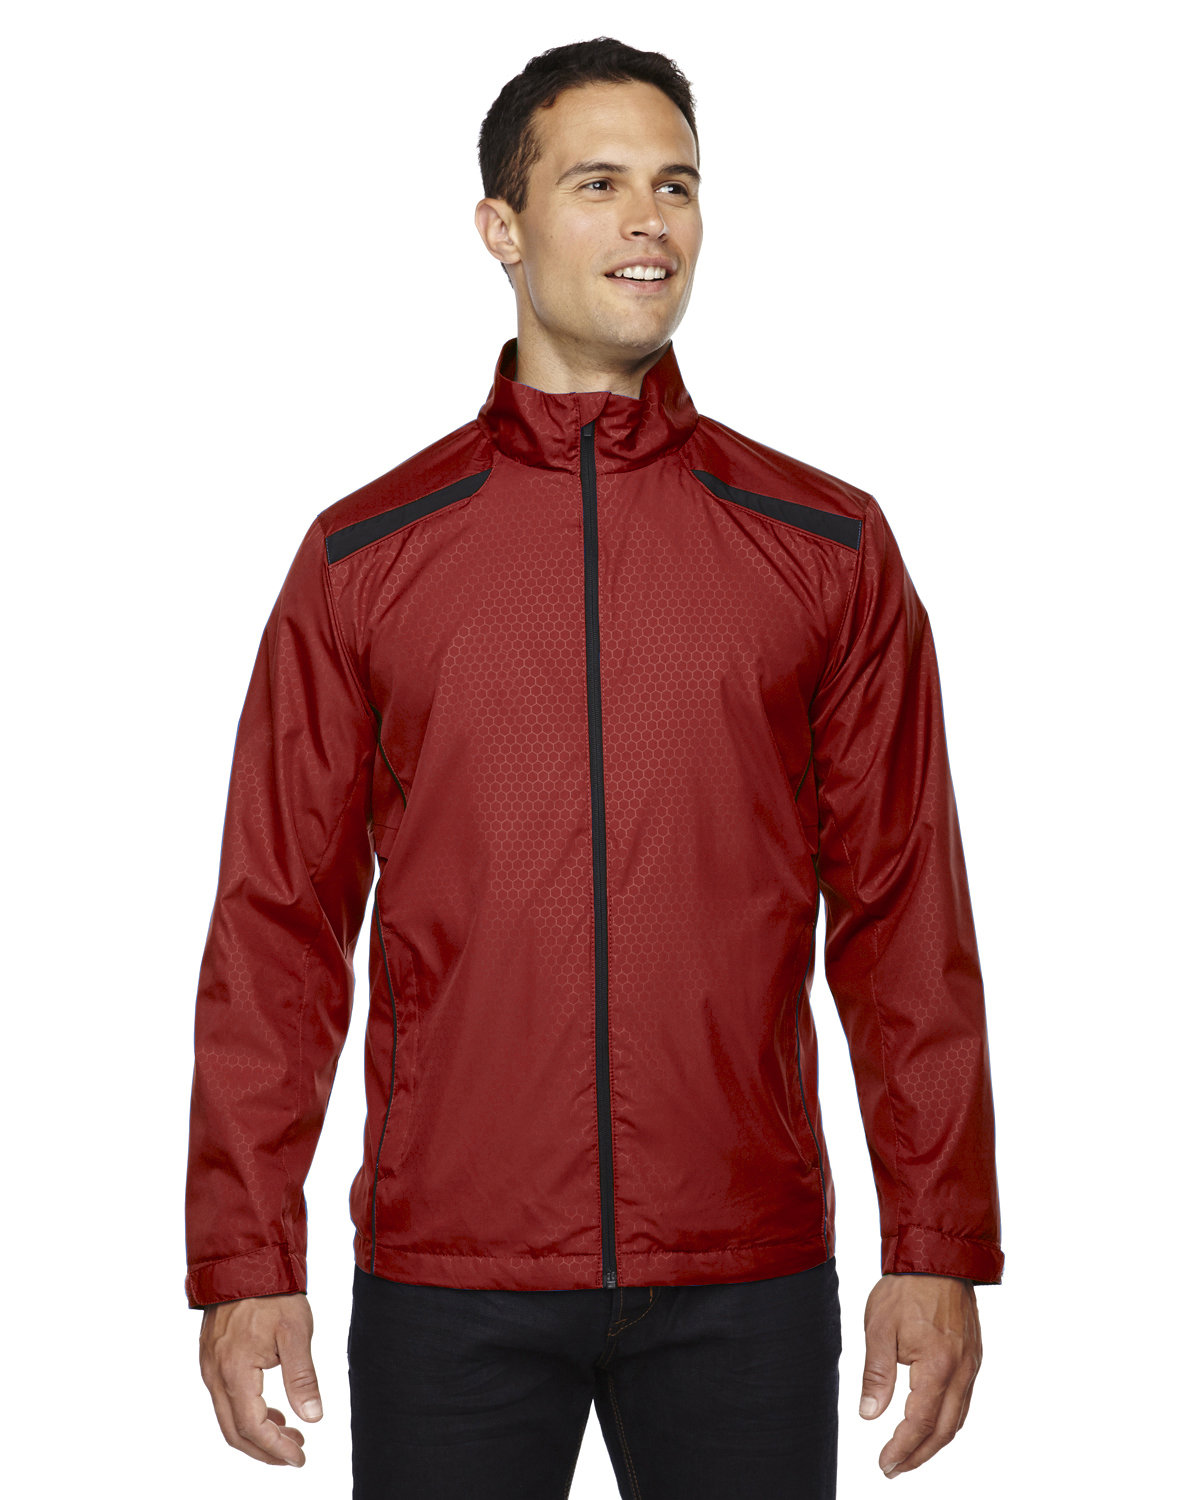 North End Men's Tempo Lightweight Recycled Polyester Jacket with Embossed Print CLASSIC RED